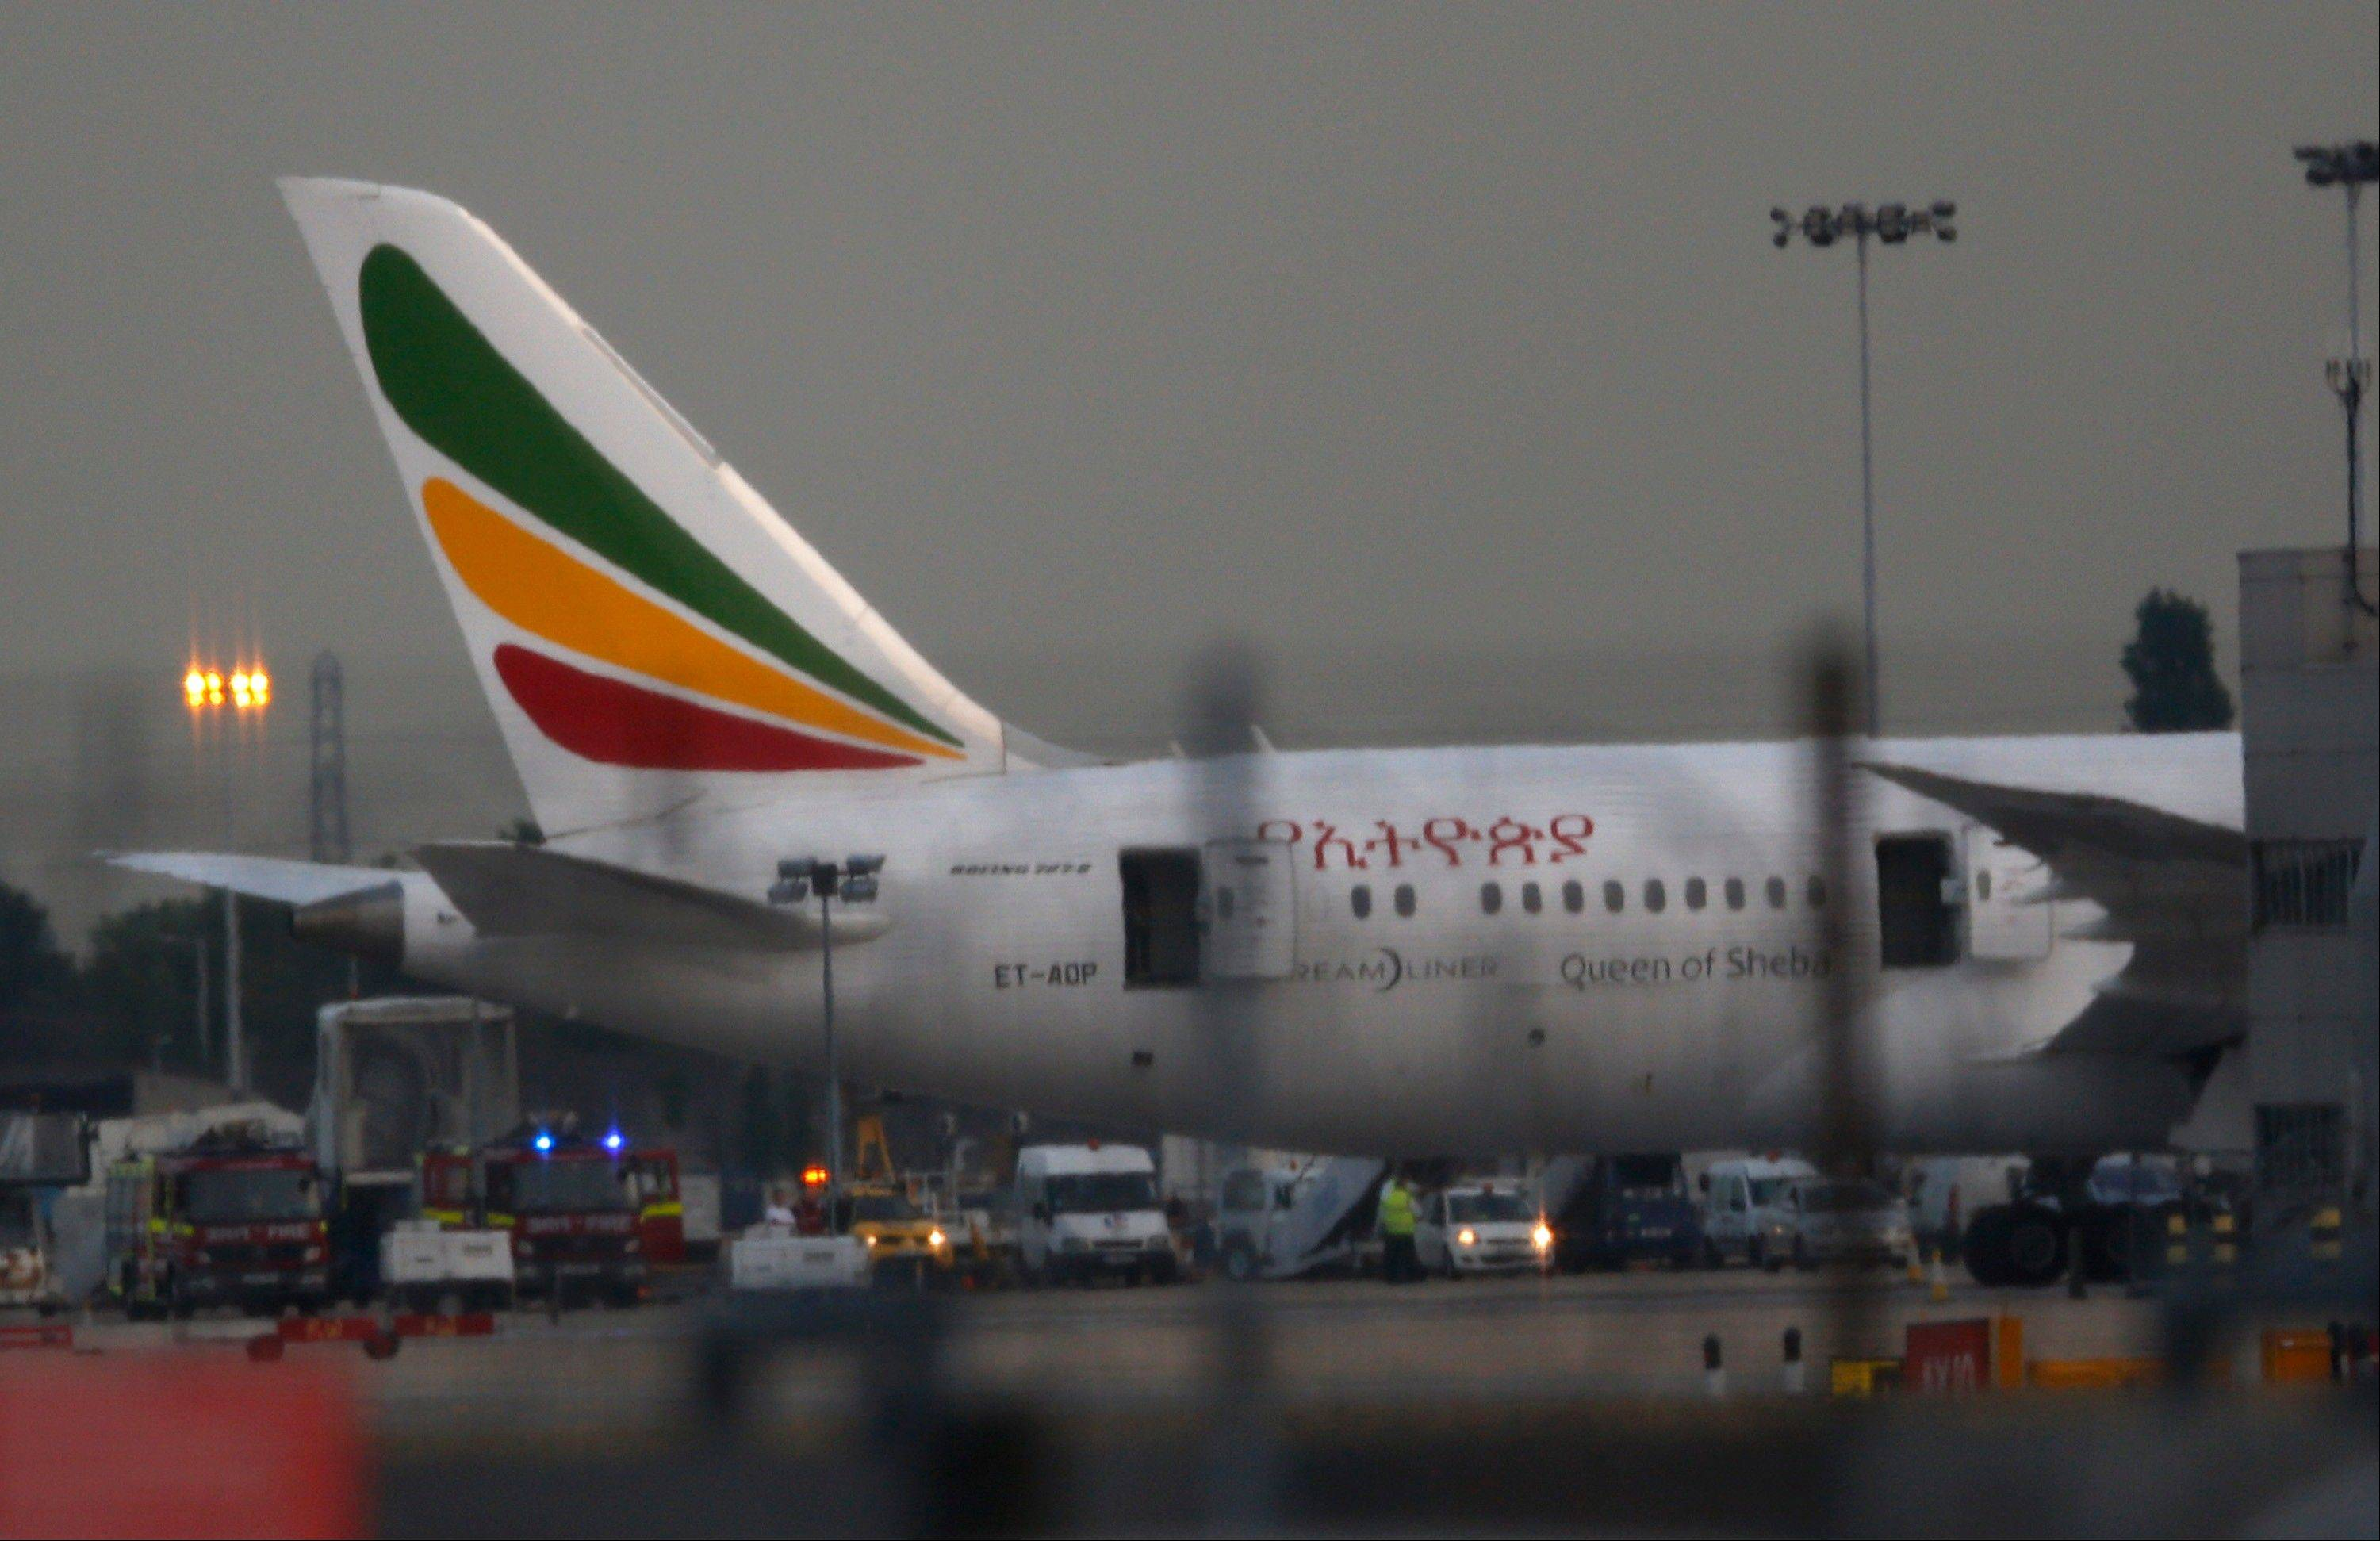 General view of the Air Ethiopian Boeing 787 Dreamliner �Queen of Sheba� aeroplane, on the runway Friday near Terminal 3, at Heathrow Airport, London.